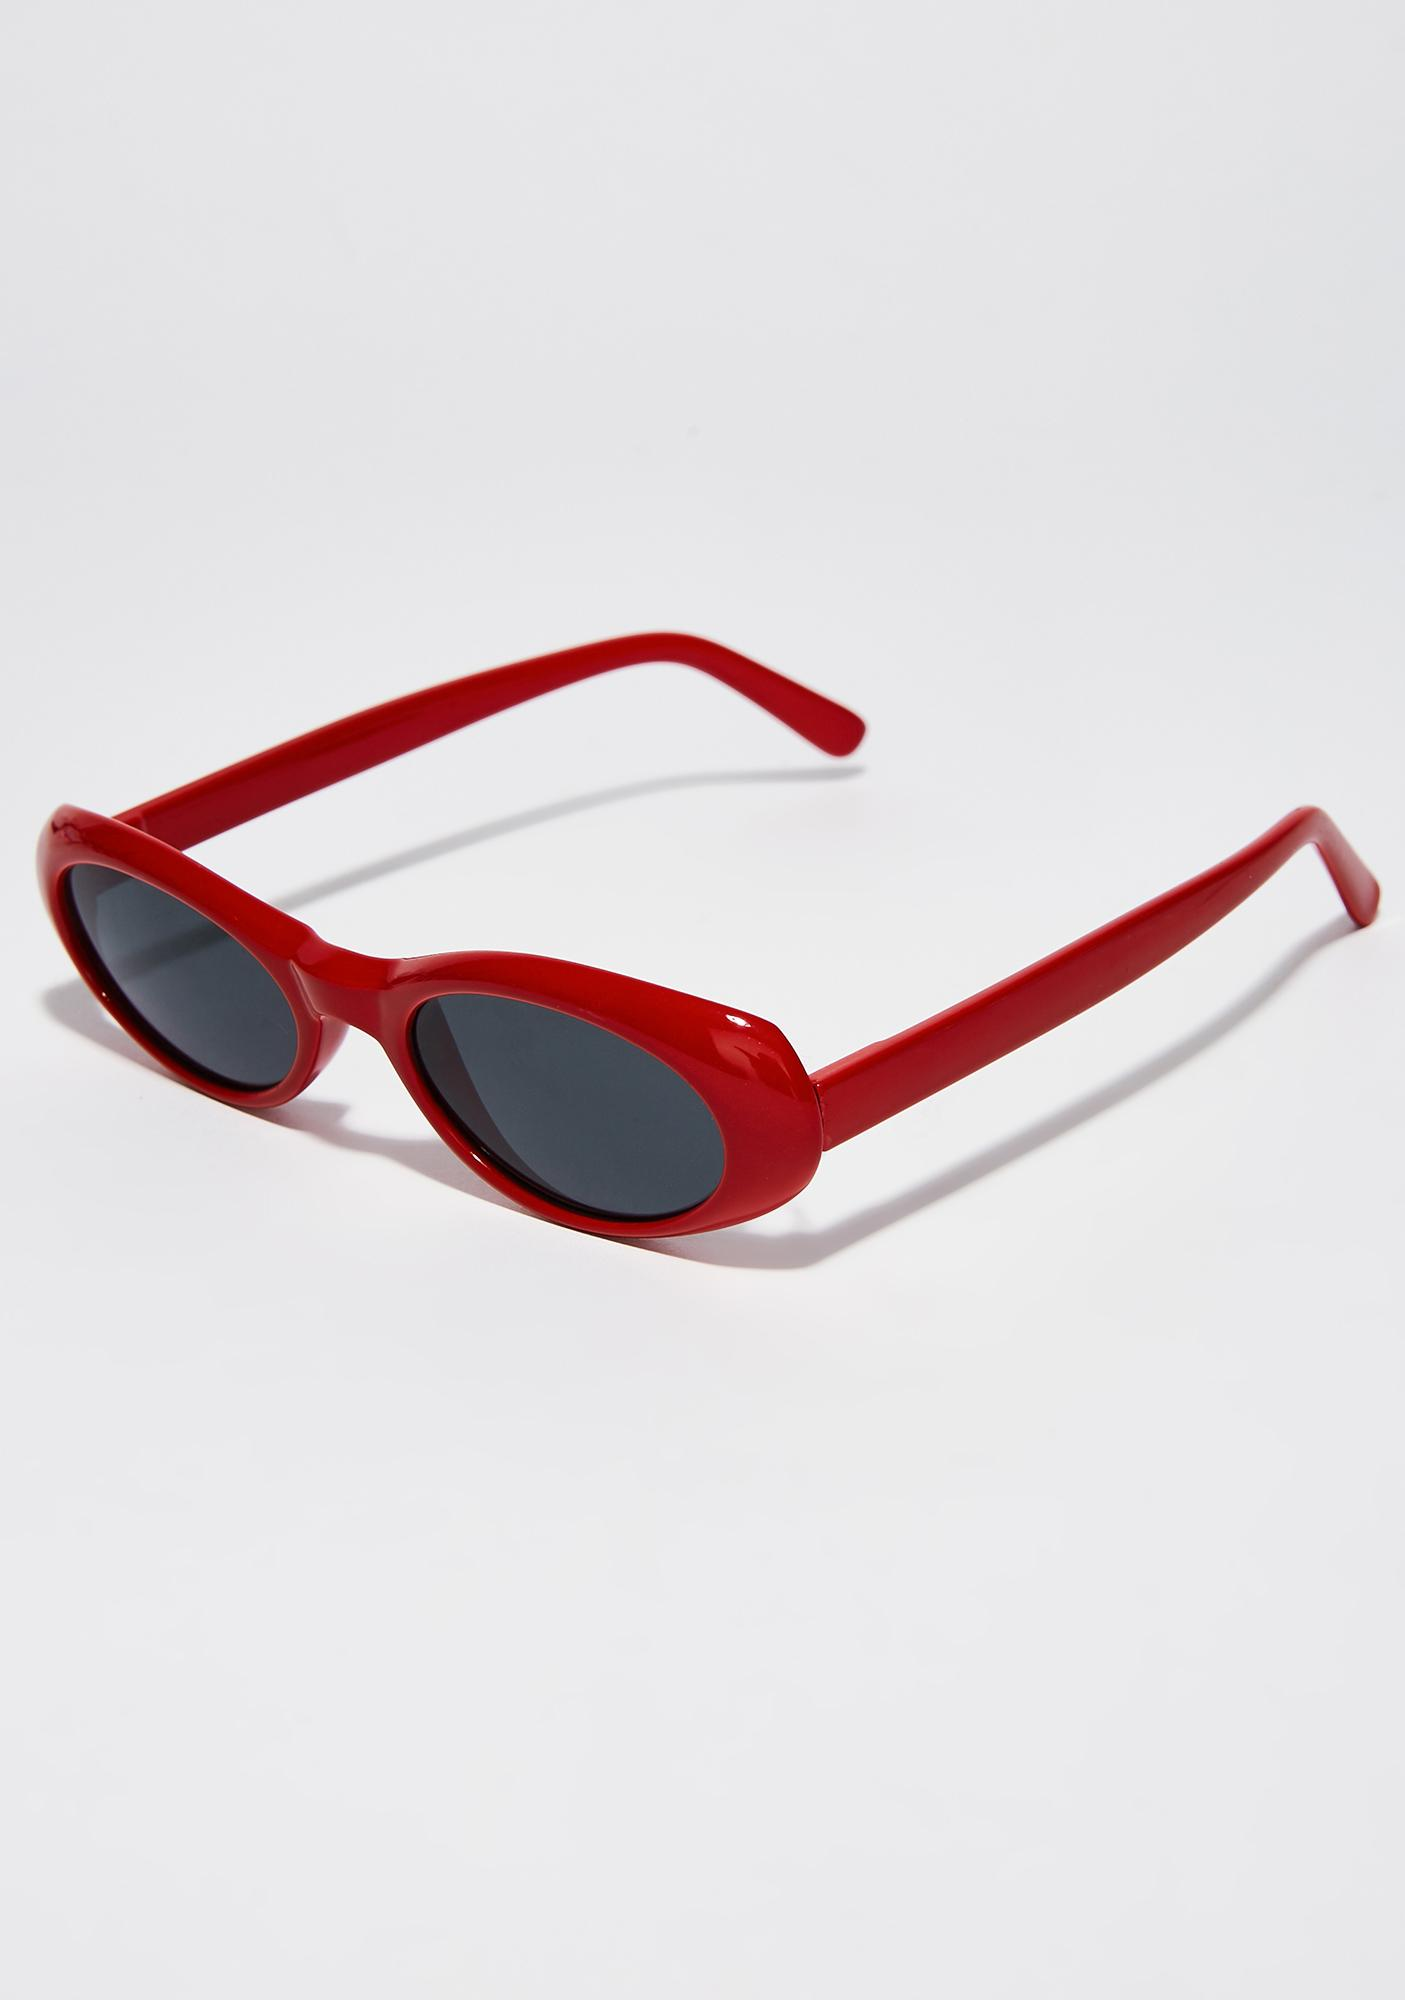 1990 Eyesight Sunglasses